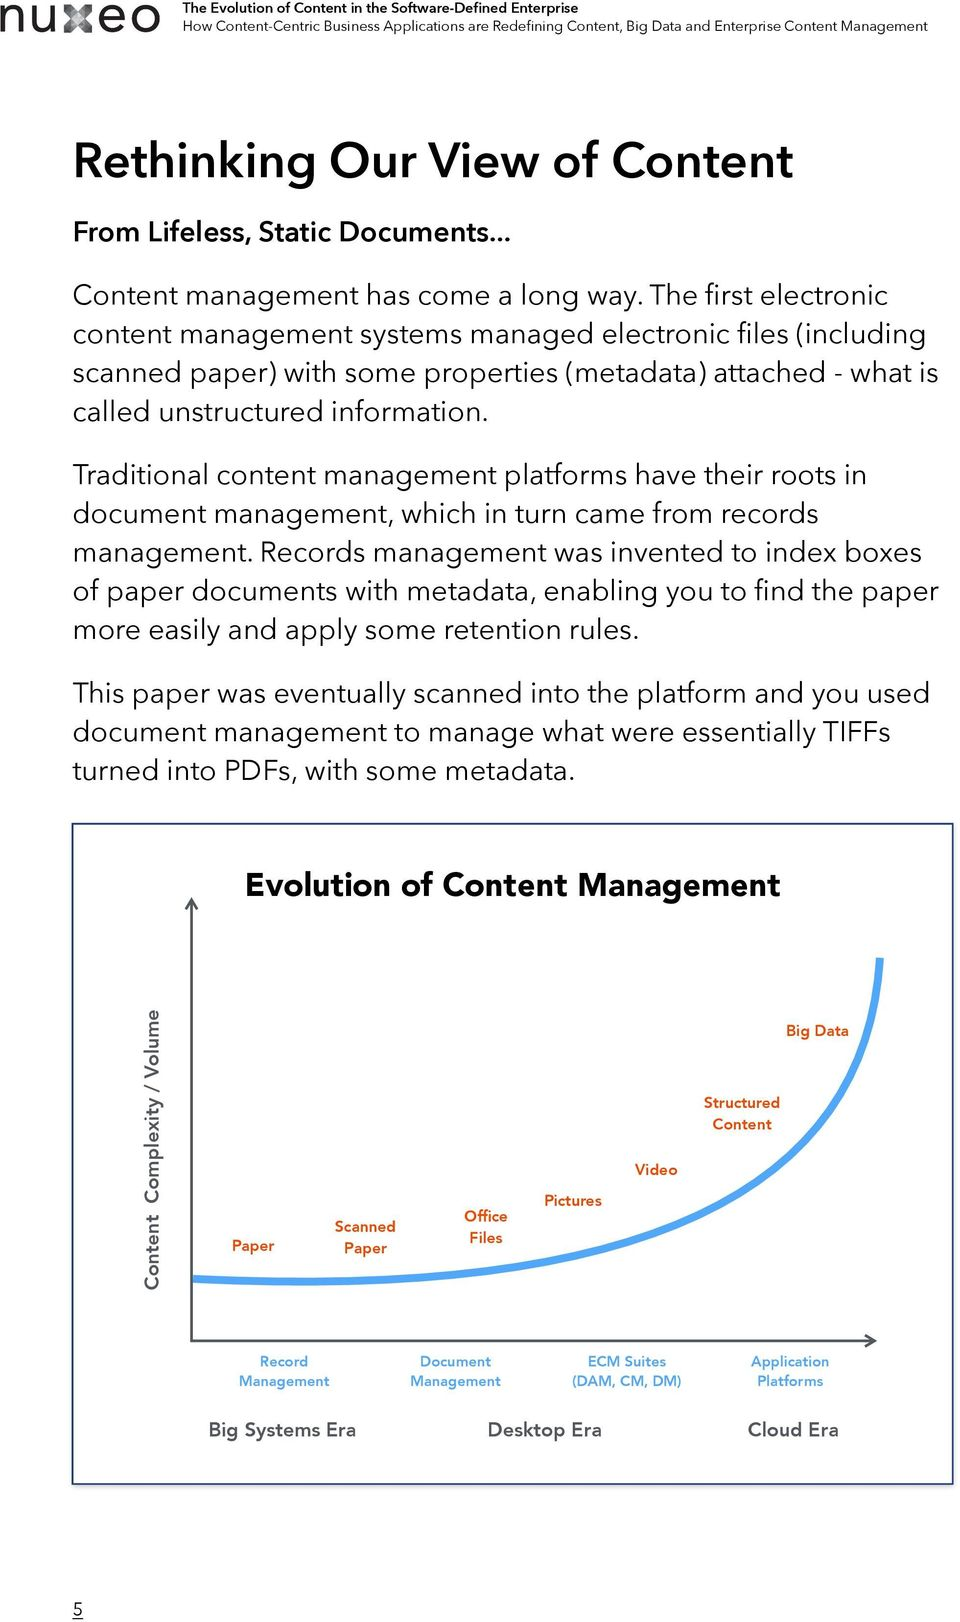 Traditional content management platforms have their roots in document management, which in turn came from records management.